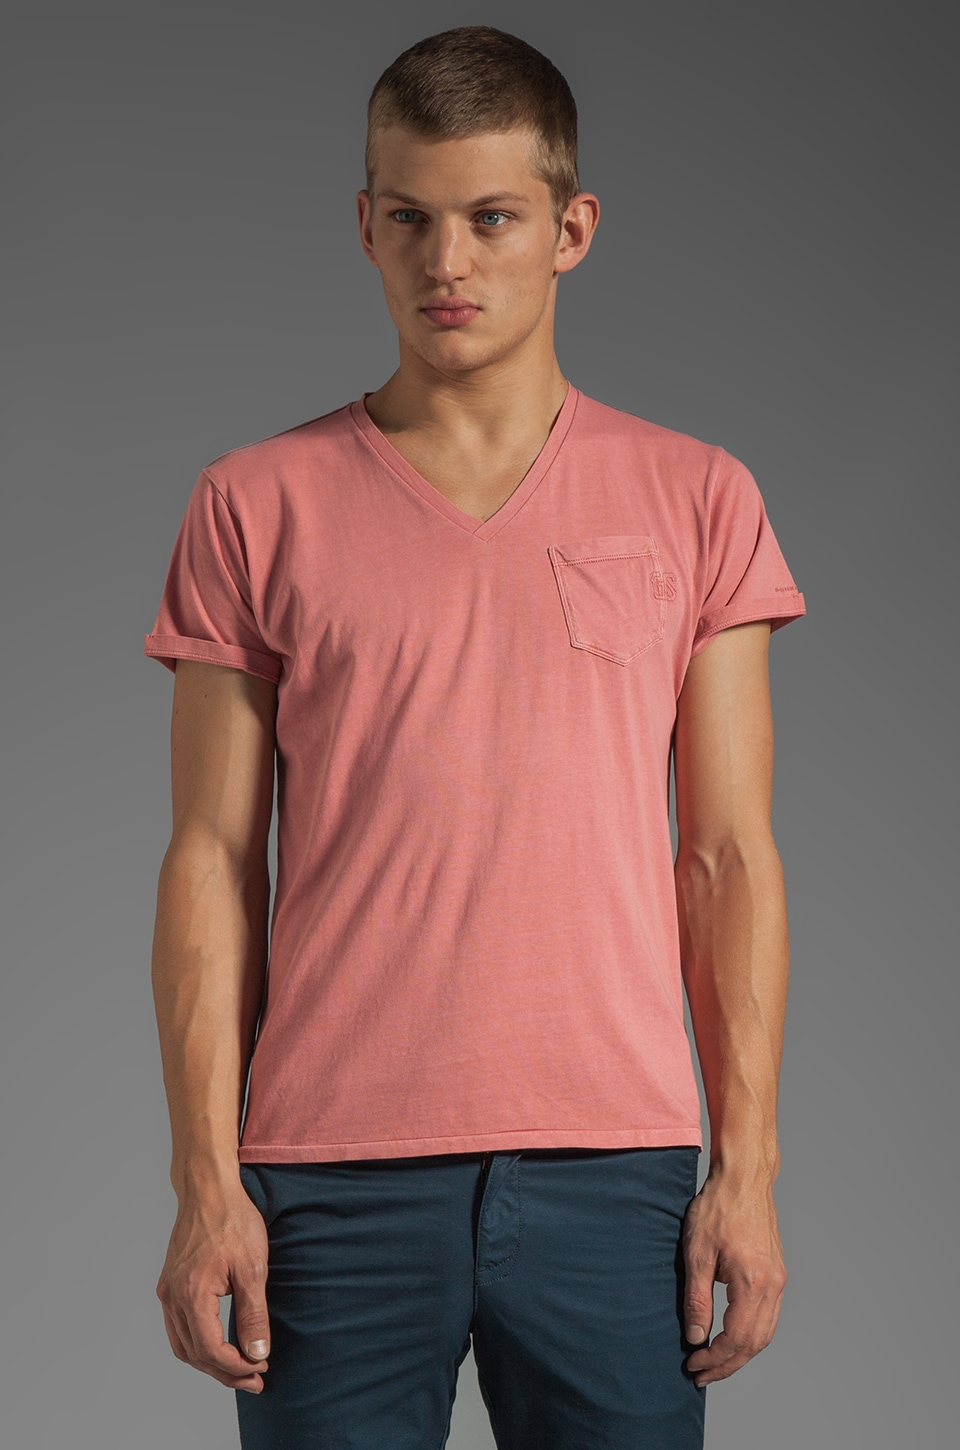 G-Star Ace 50's V Tee in Dusty Rose